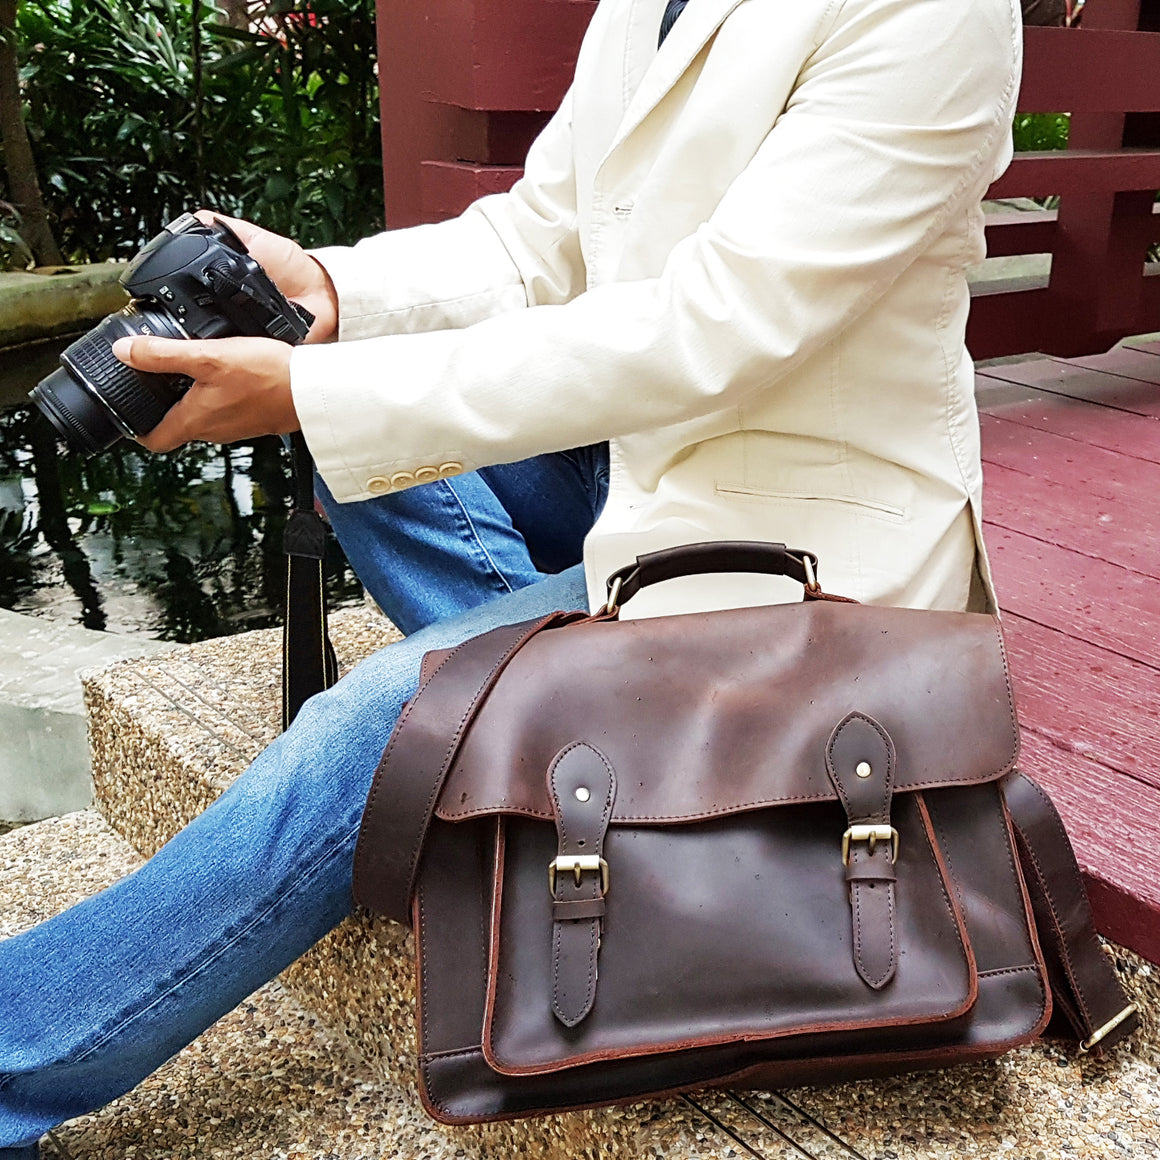 Alpha Leather DSLR Camera Bag